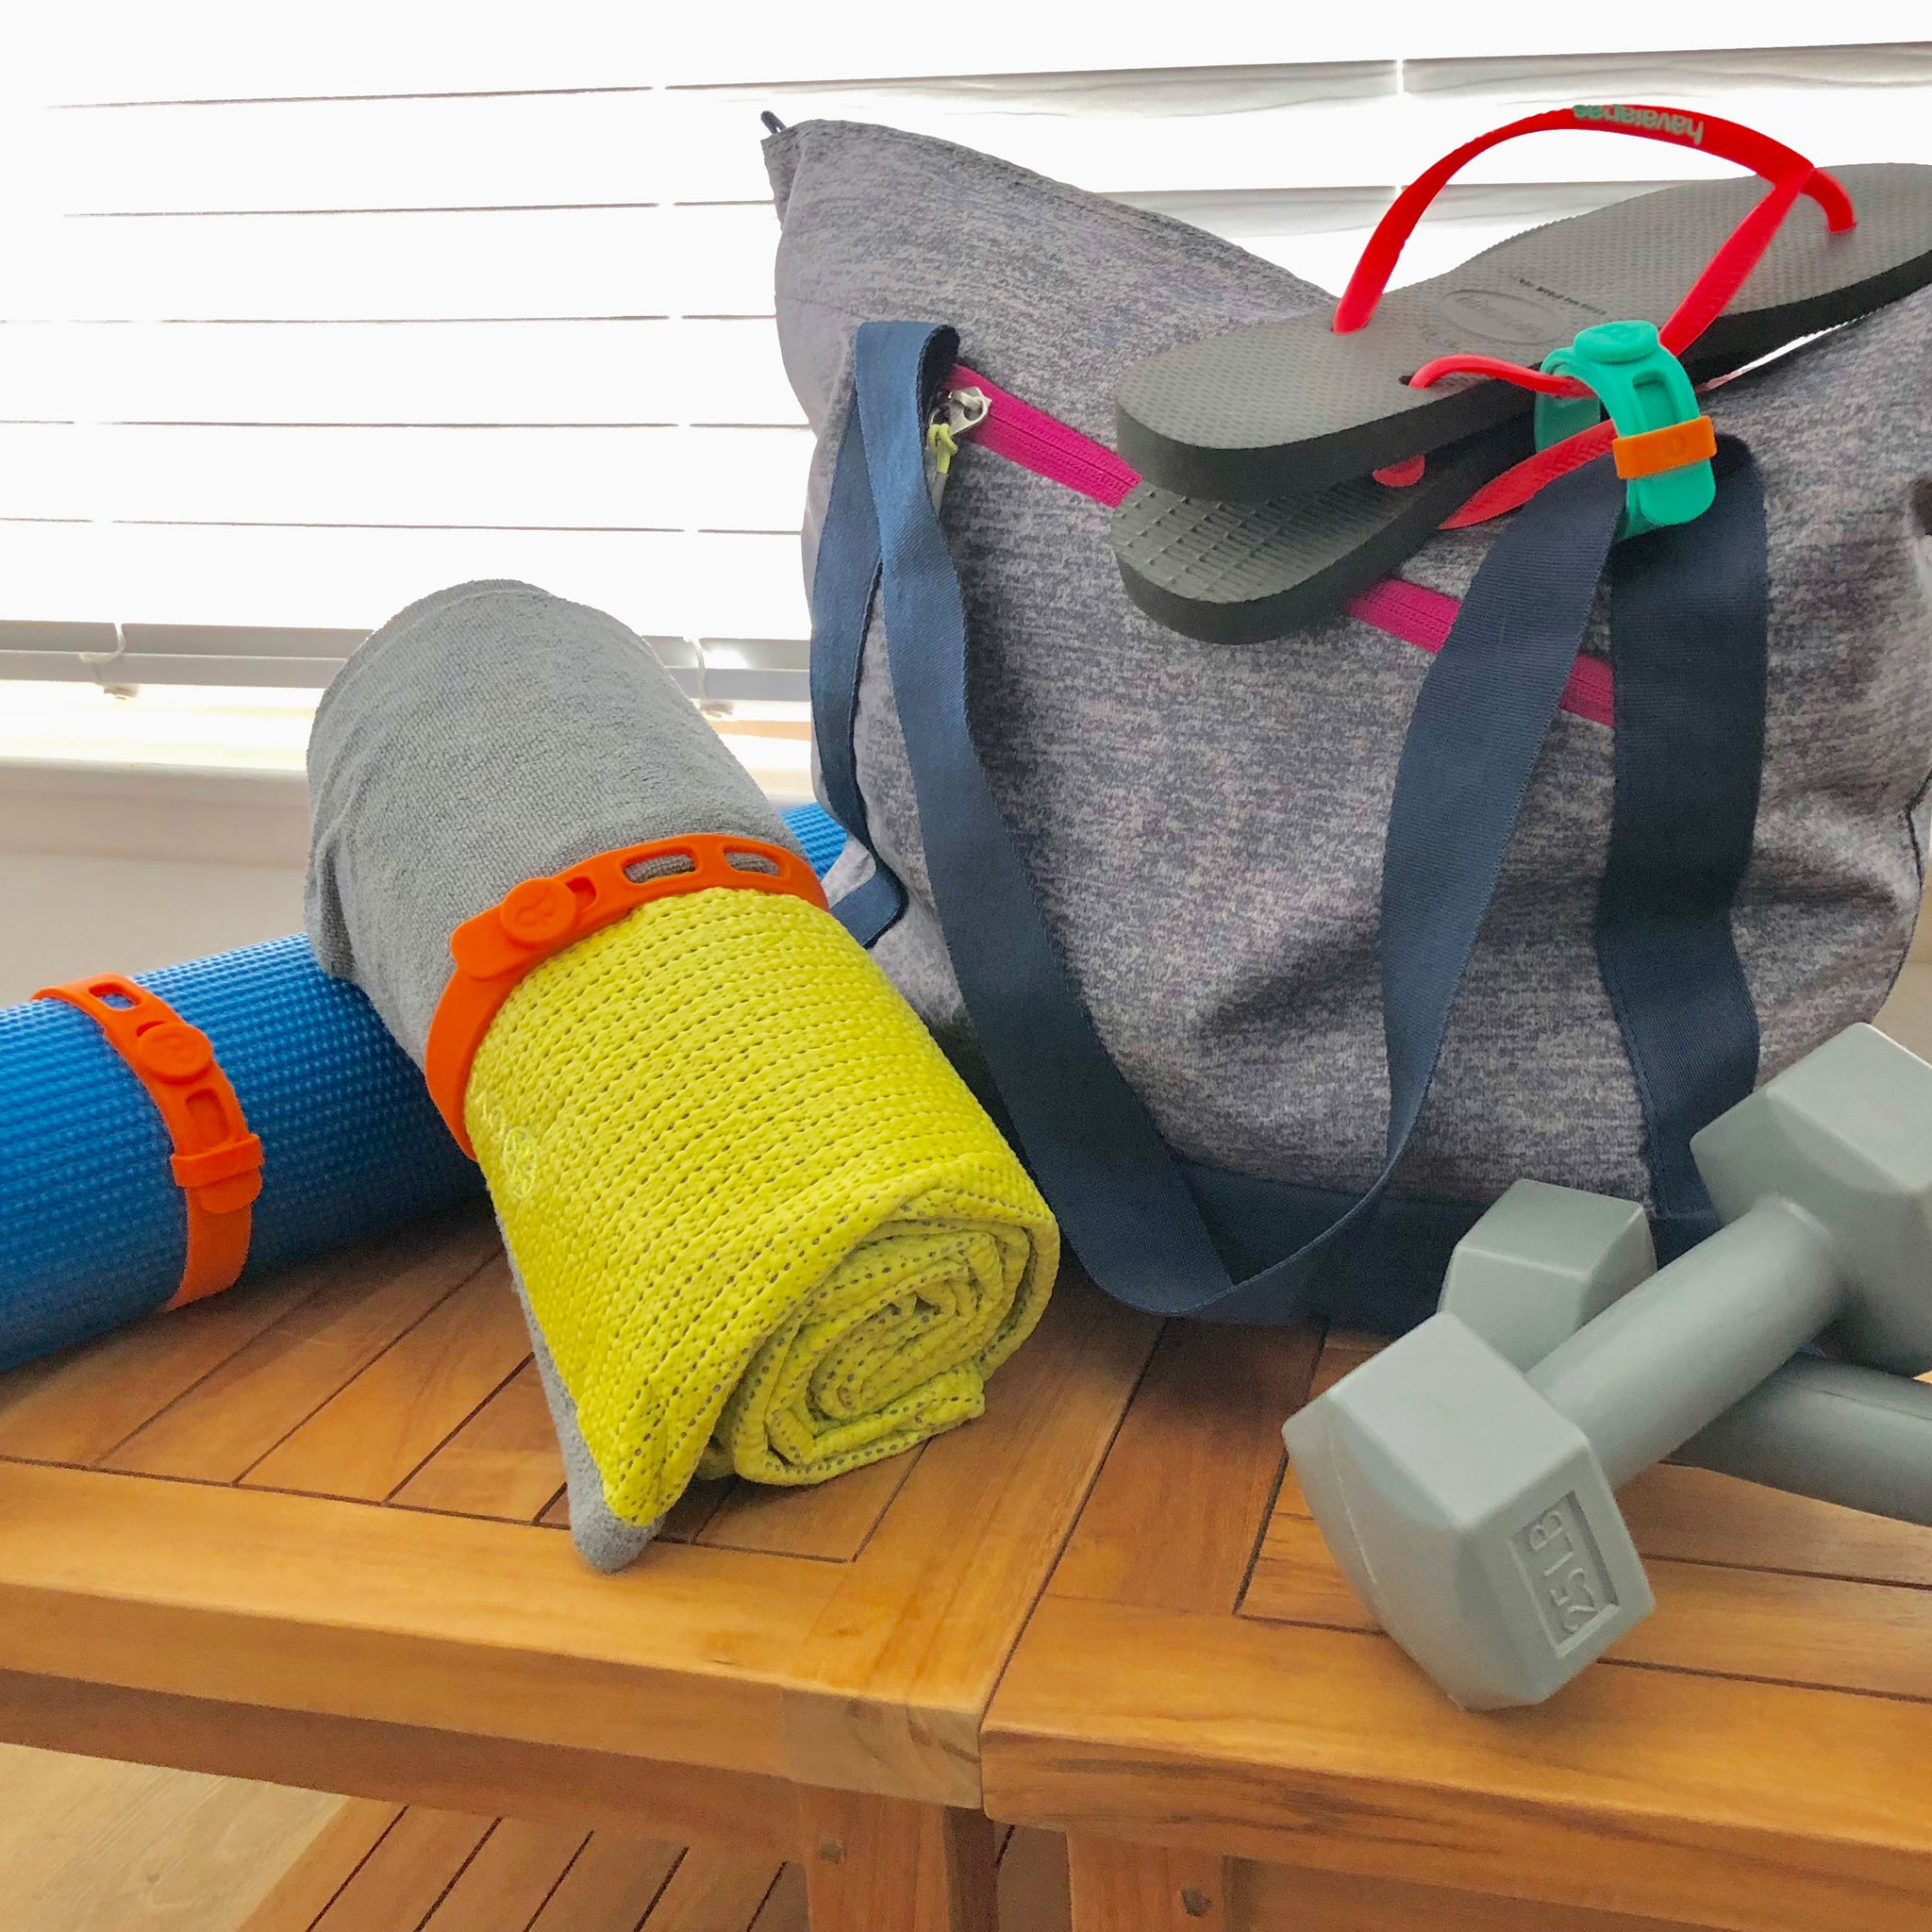 Packbands can be used at the gym as a yoga mat holder, as a band for yoga towels and to attach shower thongs and gear to workout bag.